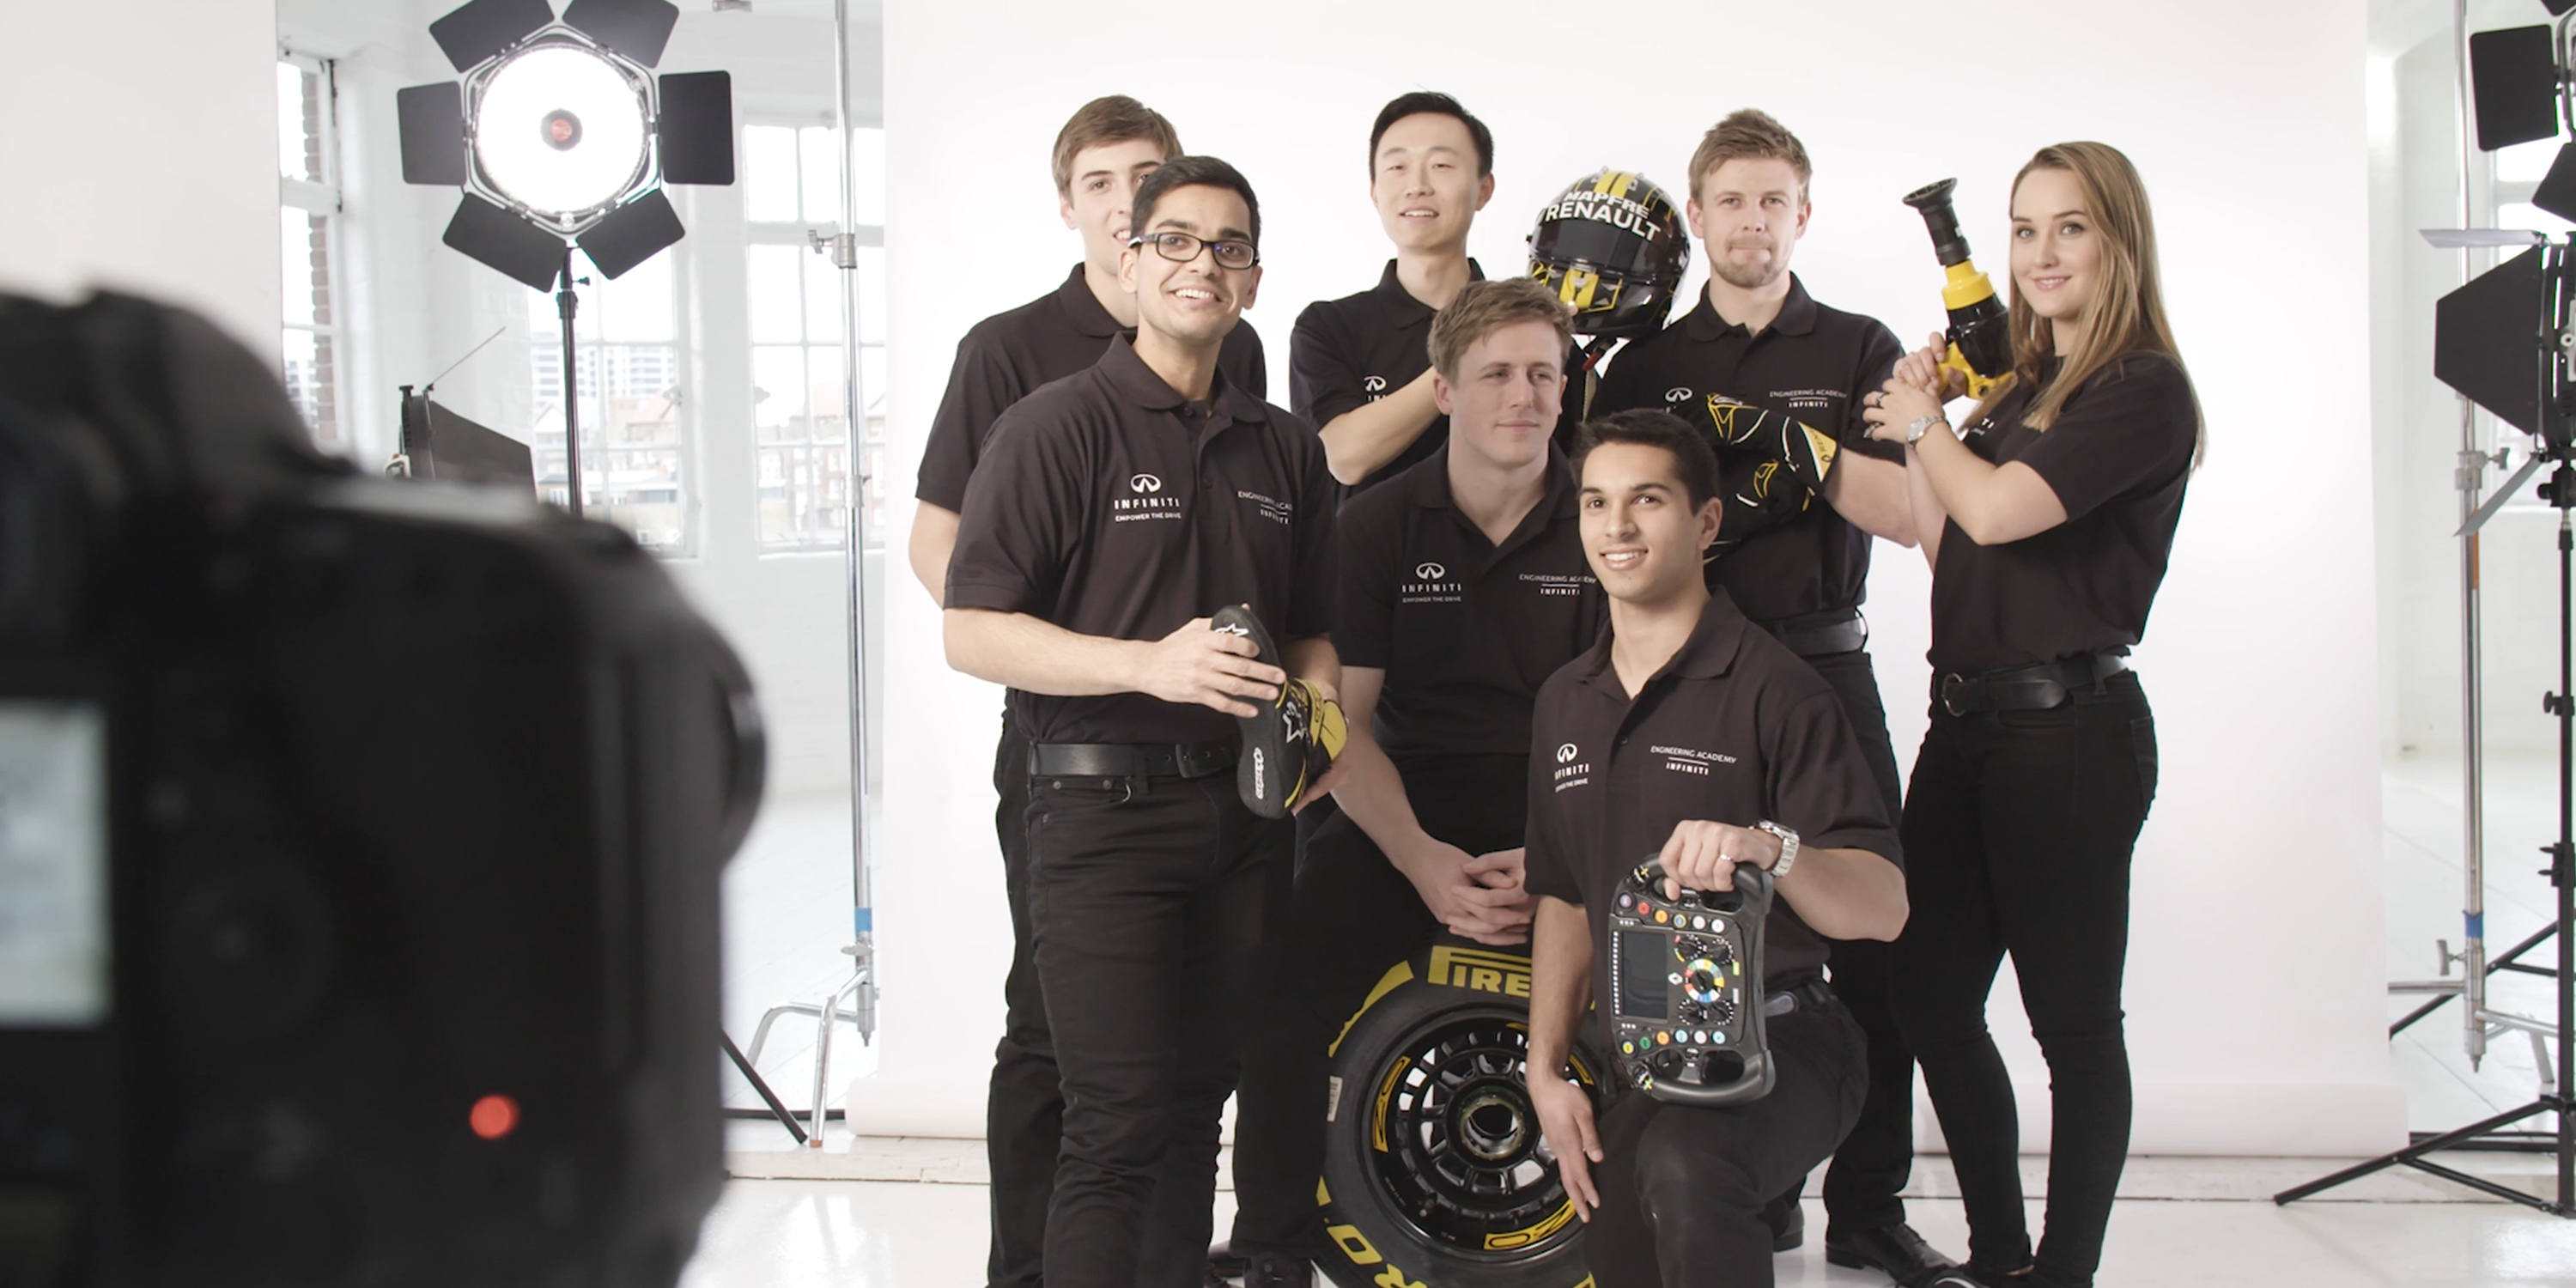 INFINITI Engineering Academy 2019 Engineer Members Taking Group Photos